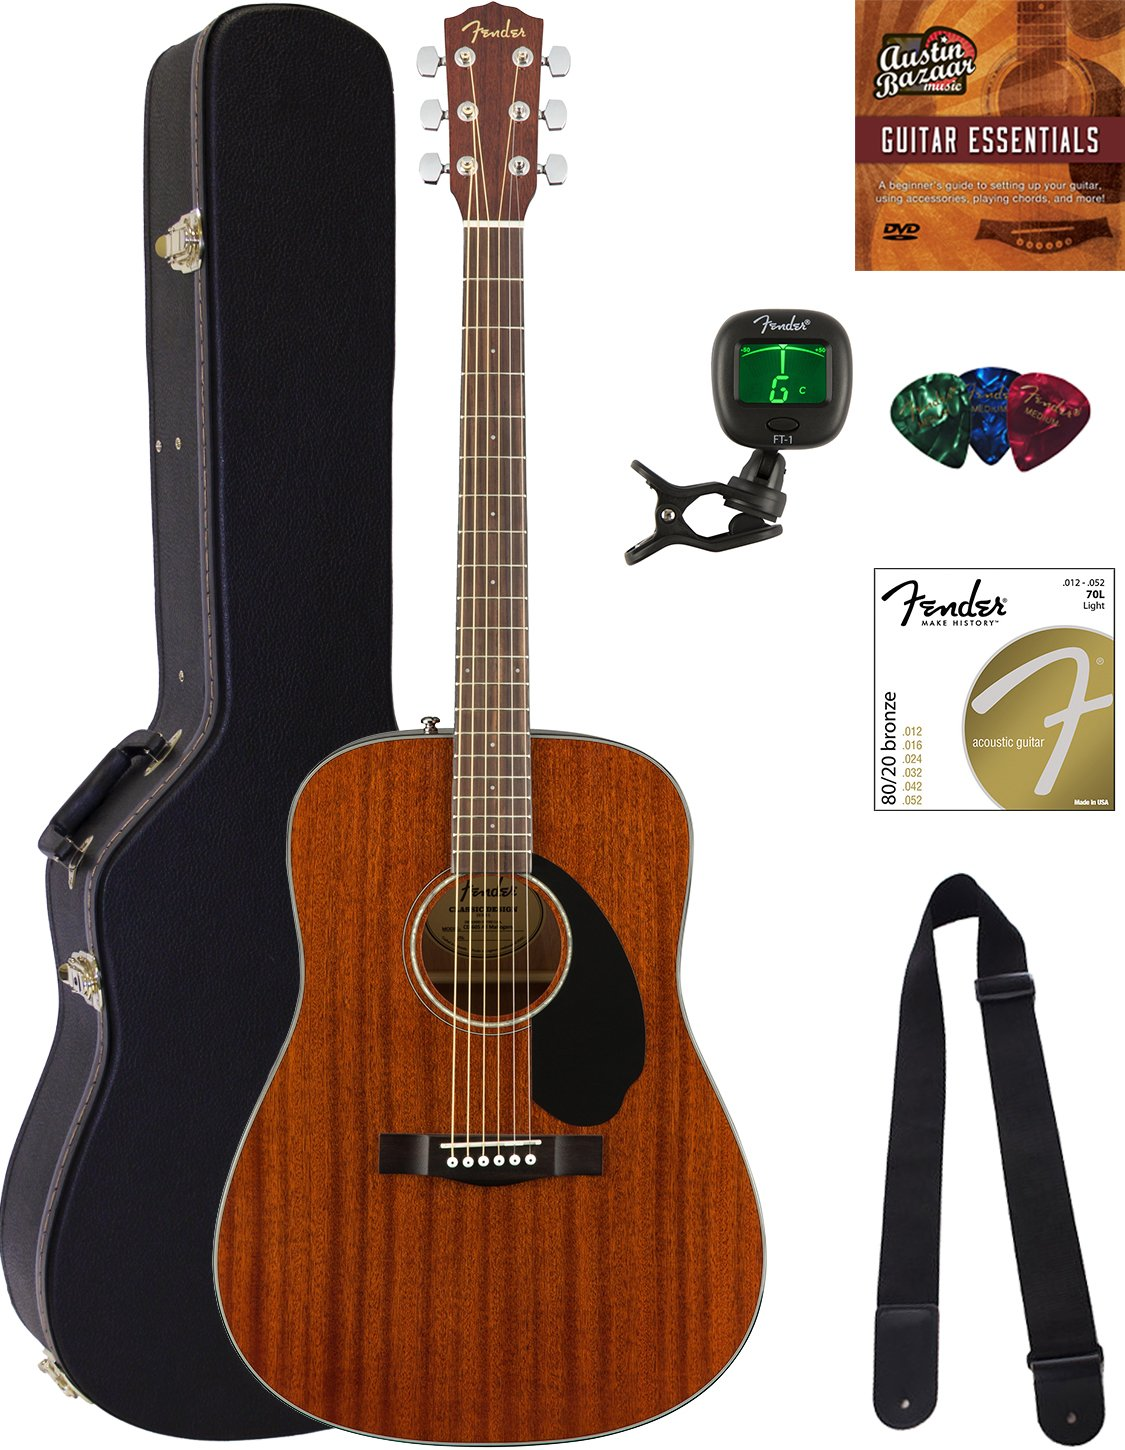 Fender CD-60S Dreadnought Acoustic Guitar - All Mahogany Bundle with Hard Case, Tuner, Strap, Strings, Picks, Austin Bazaar Instructional DVD, and Polishing Cloth by Fender